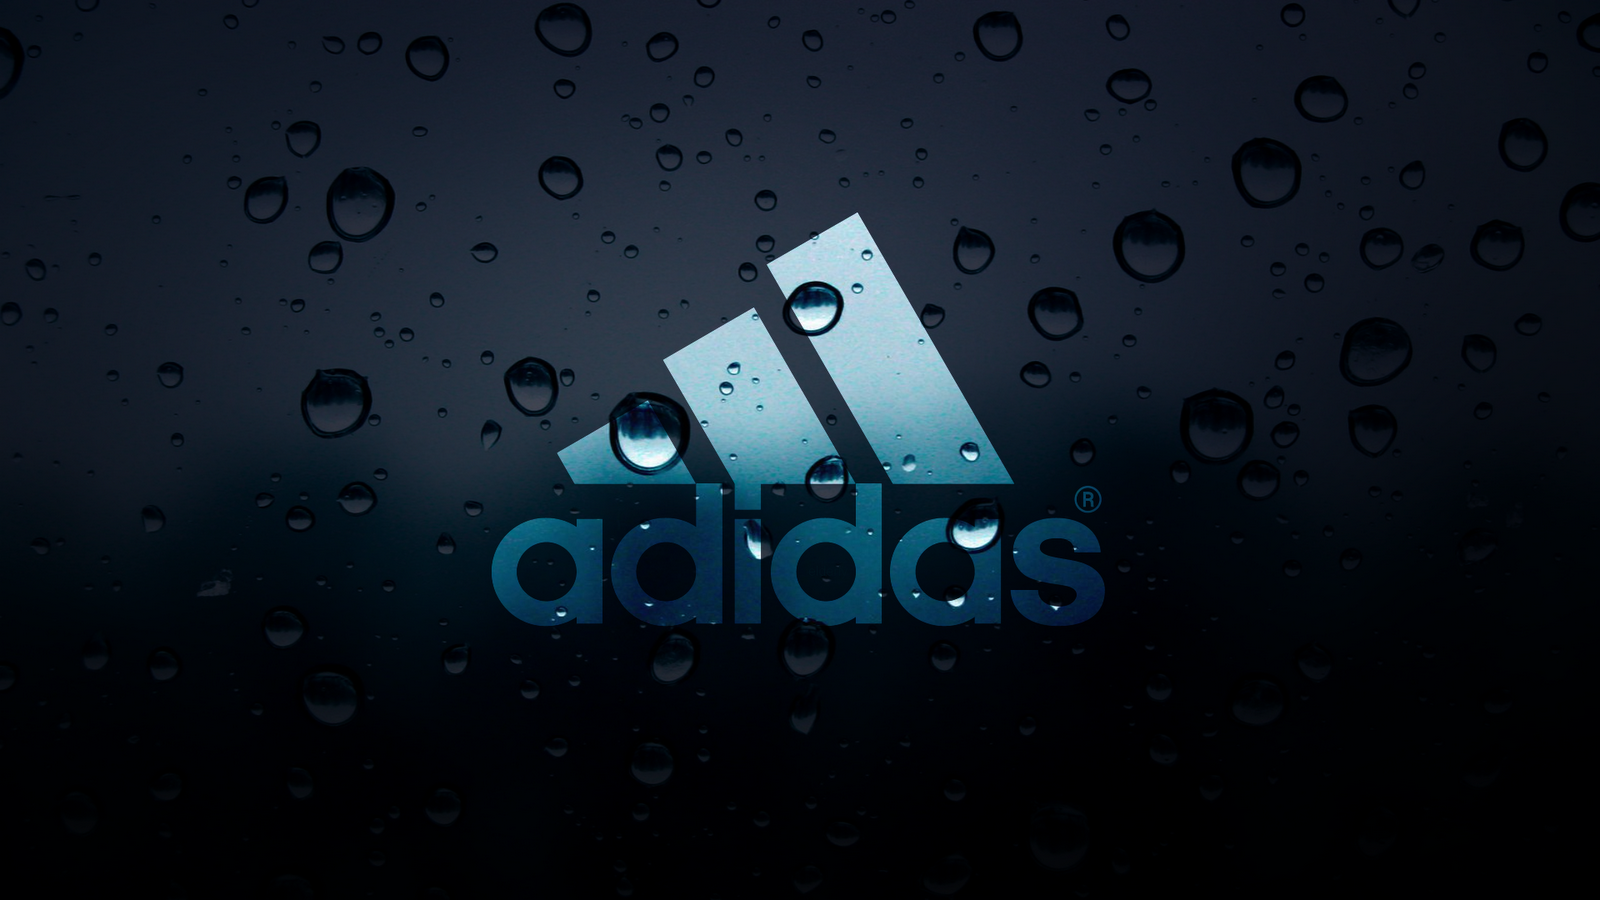 30 Adidas HD Wallpapers | Background Images - Wallpaper Abyss